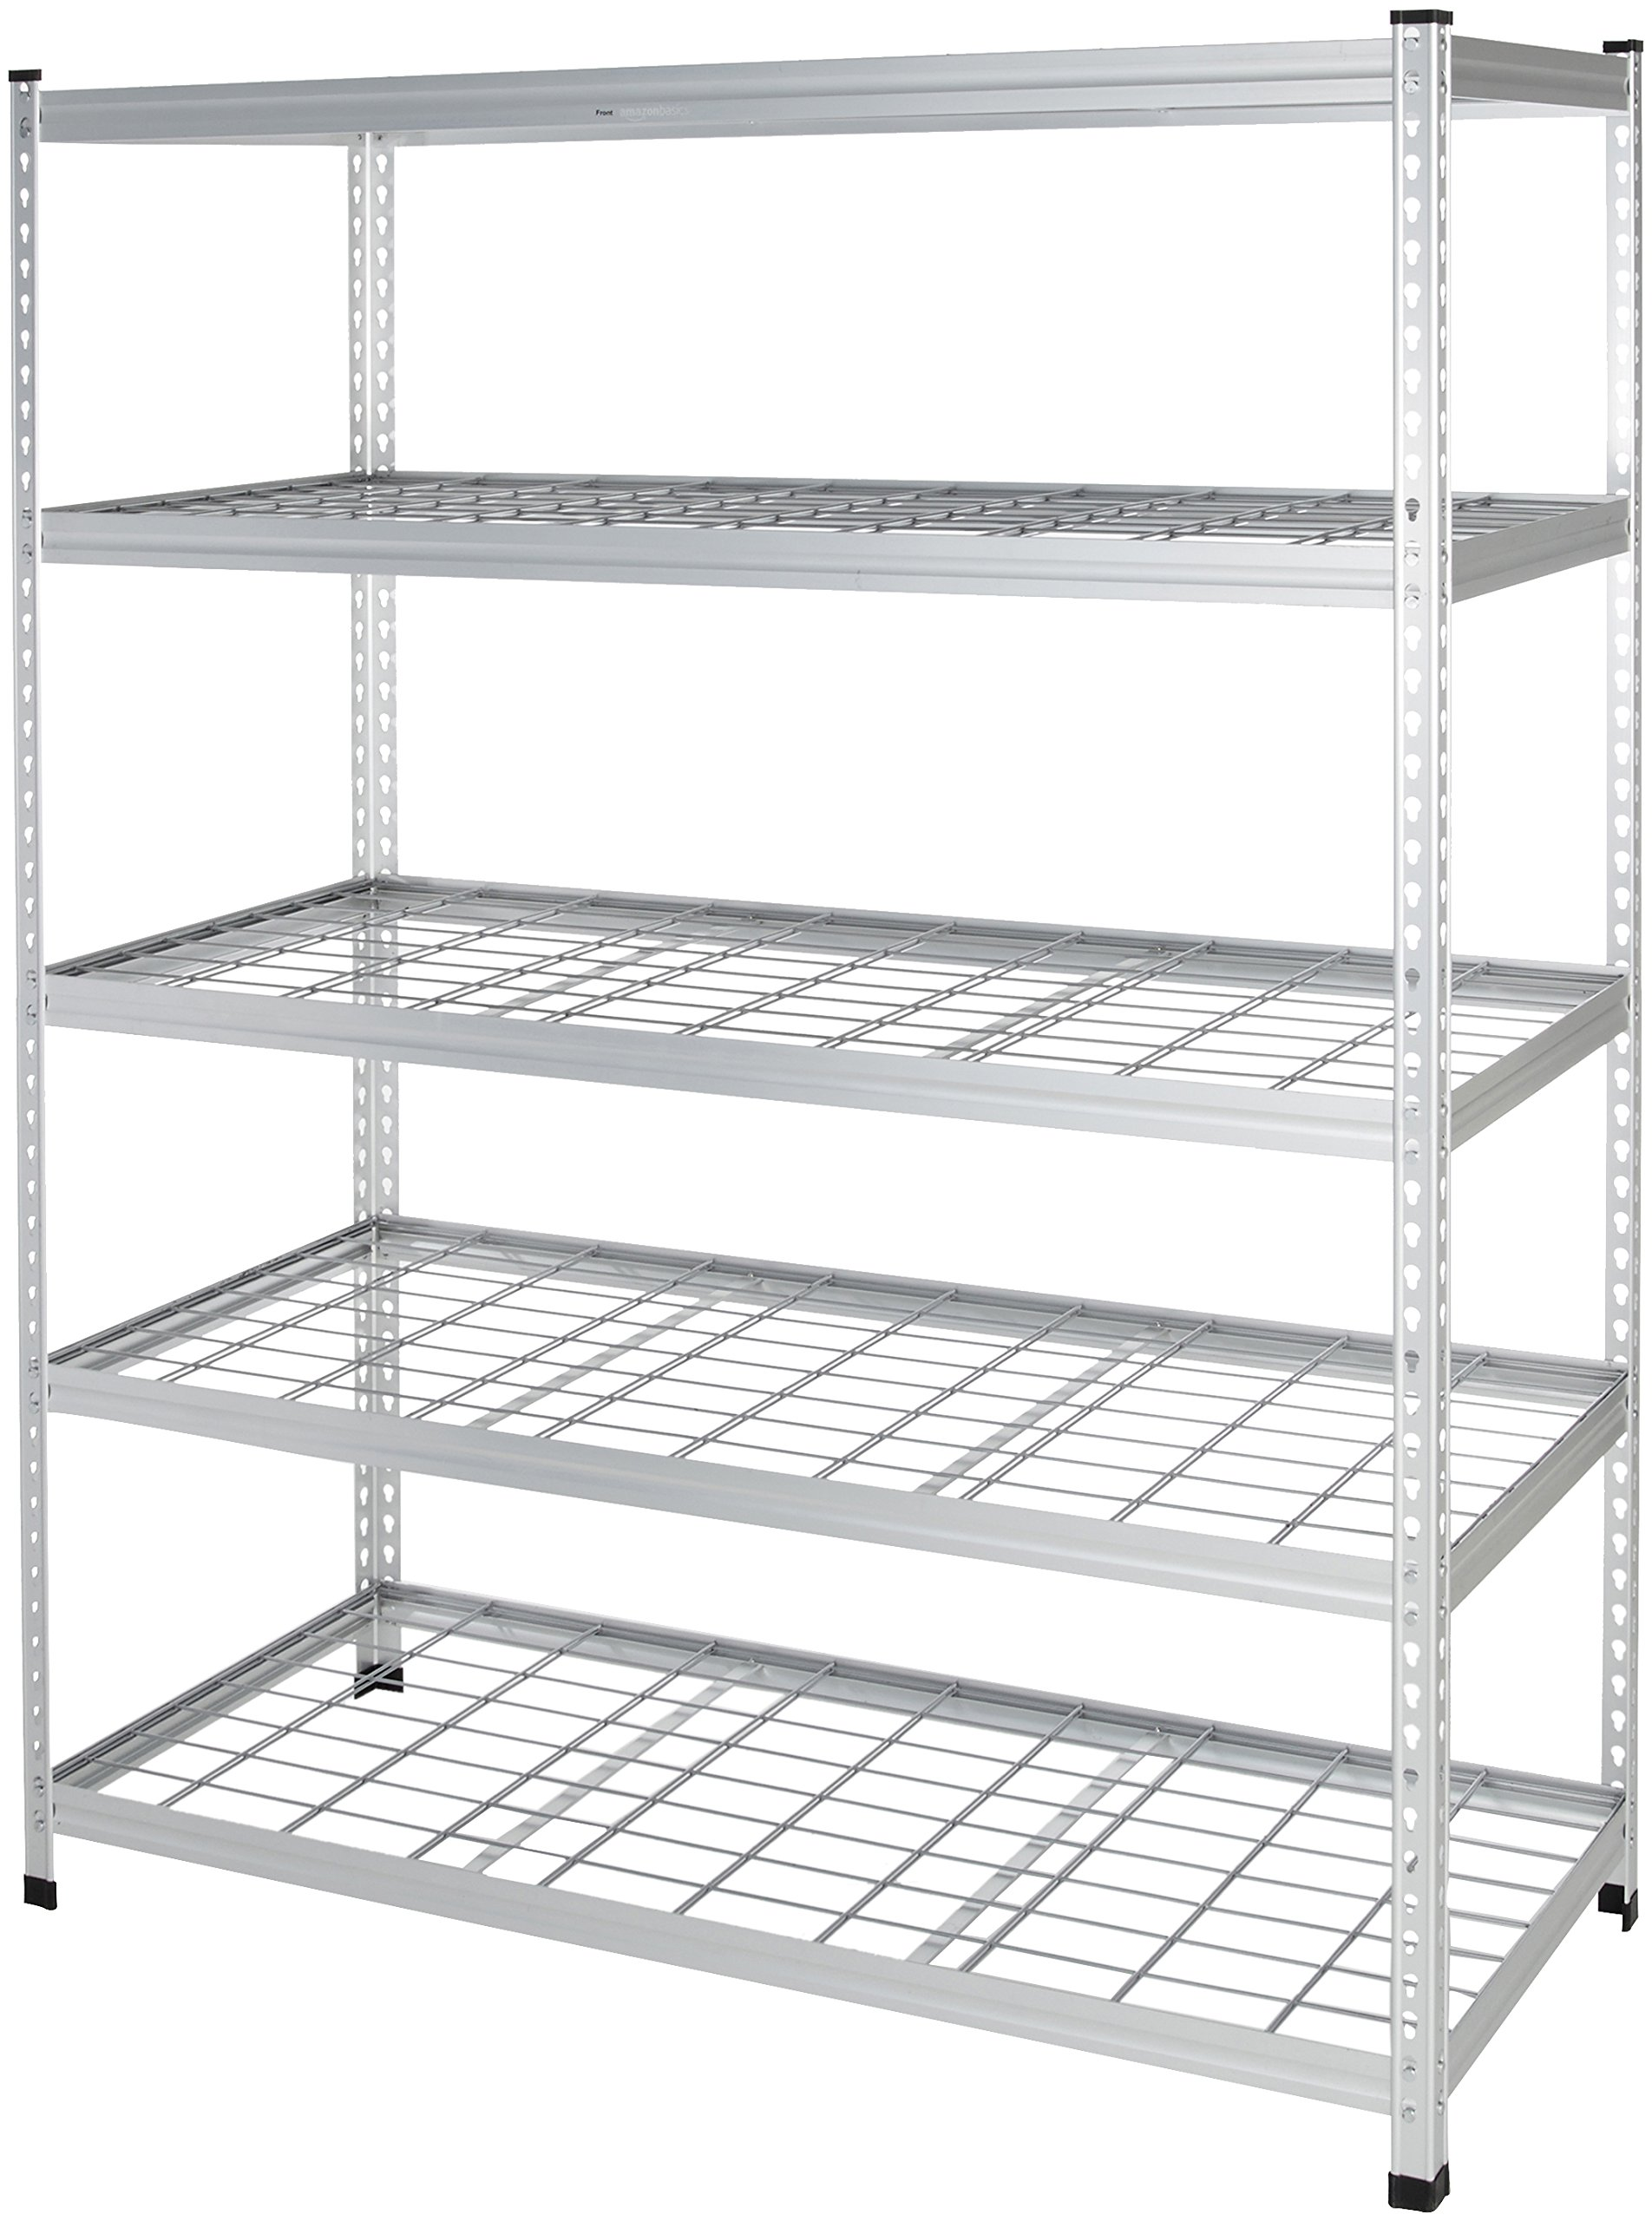 AmazonBasics Heavy Duty Storage Shelving Double Post Steel Wire Shelf, 60 x 24 x 78 Inch, Aluminum by AmazonBasics